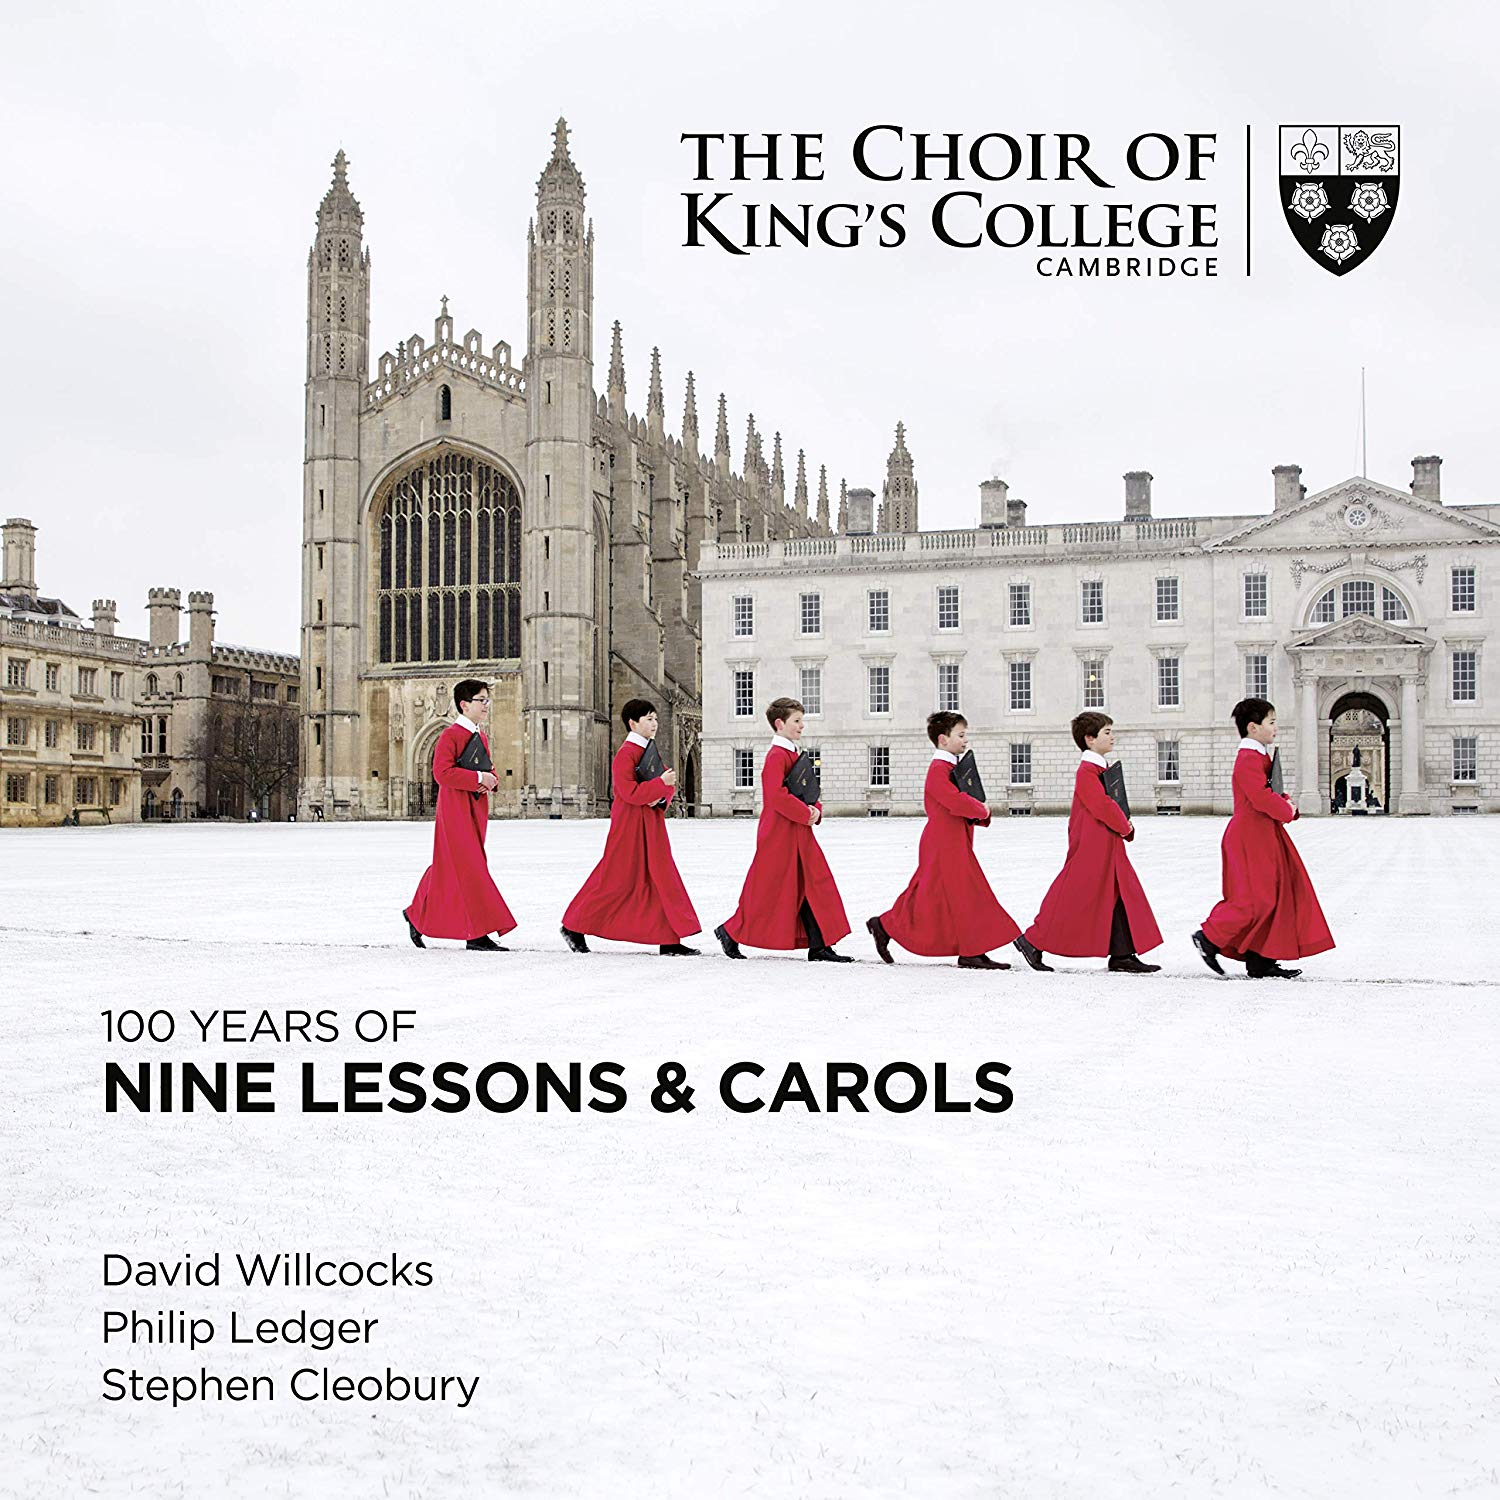 100 years of 9 lessons and carols